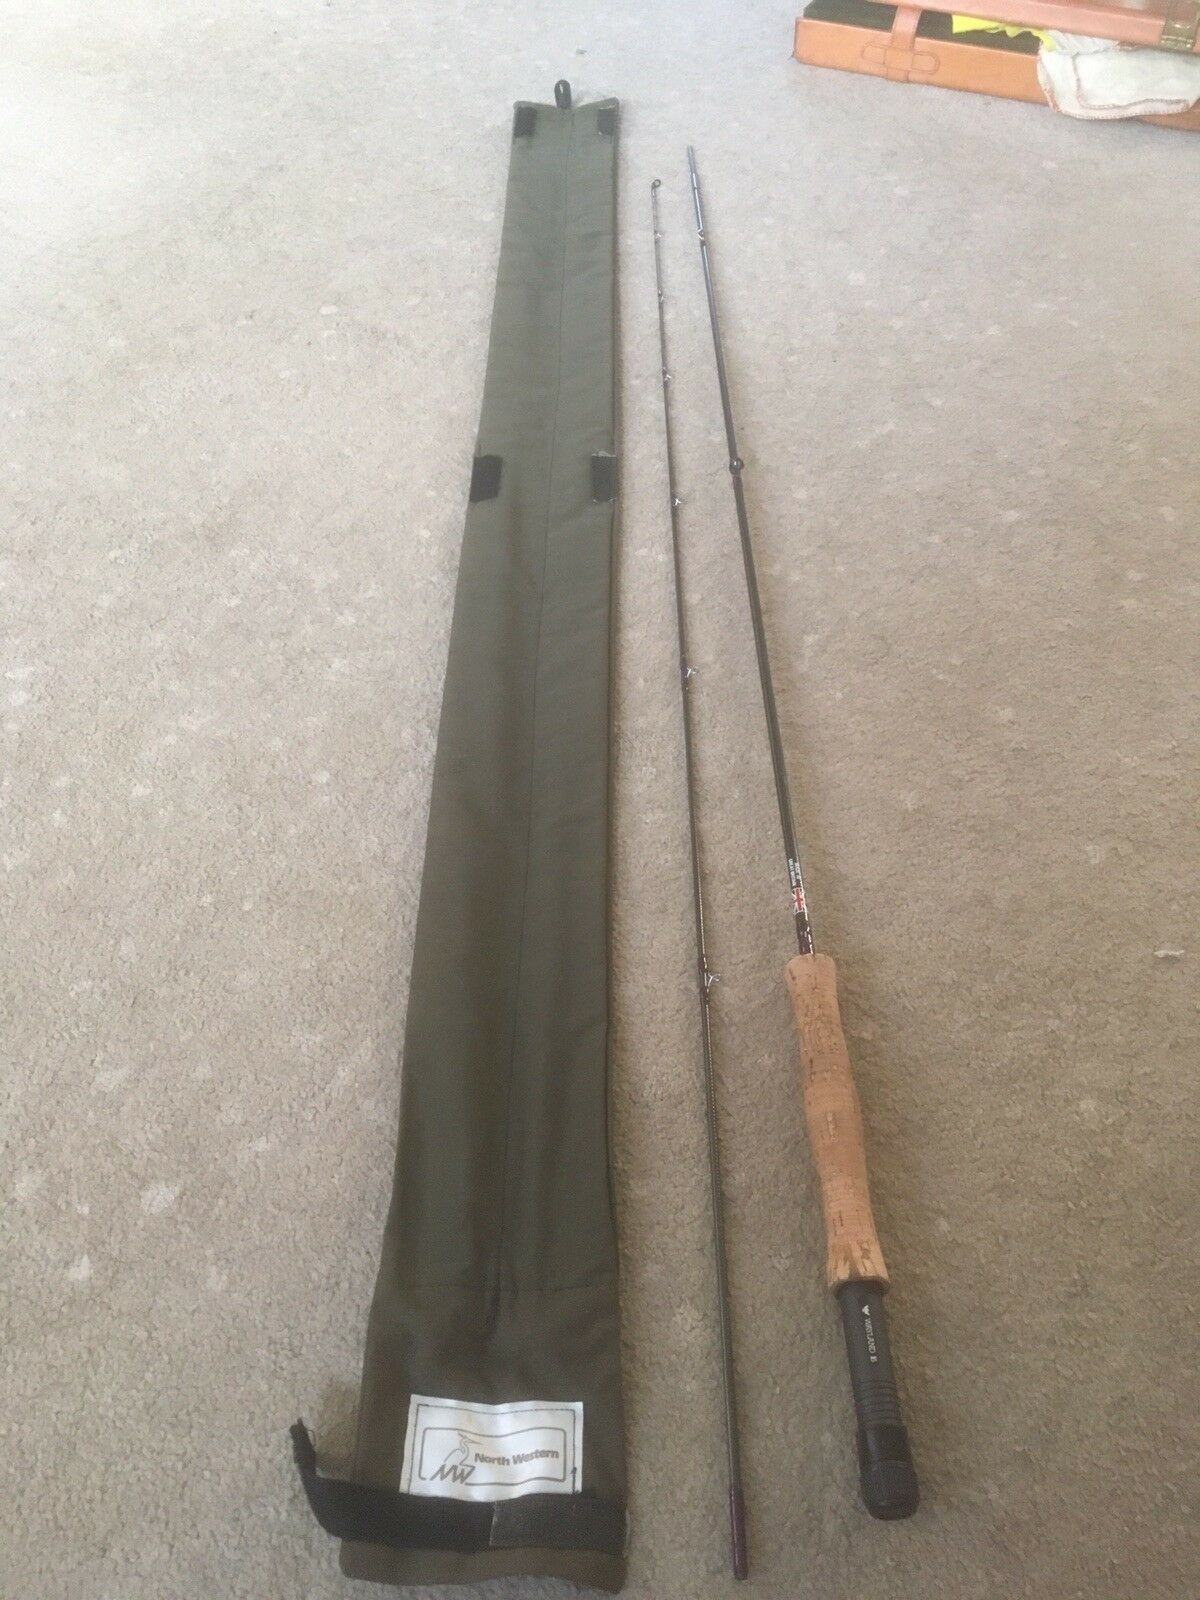 North Western Rodcraft 8' Fly Rod. Excellent.